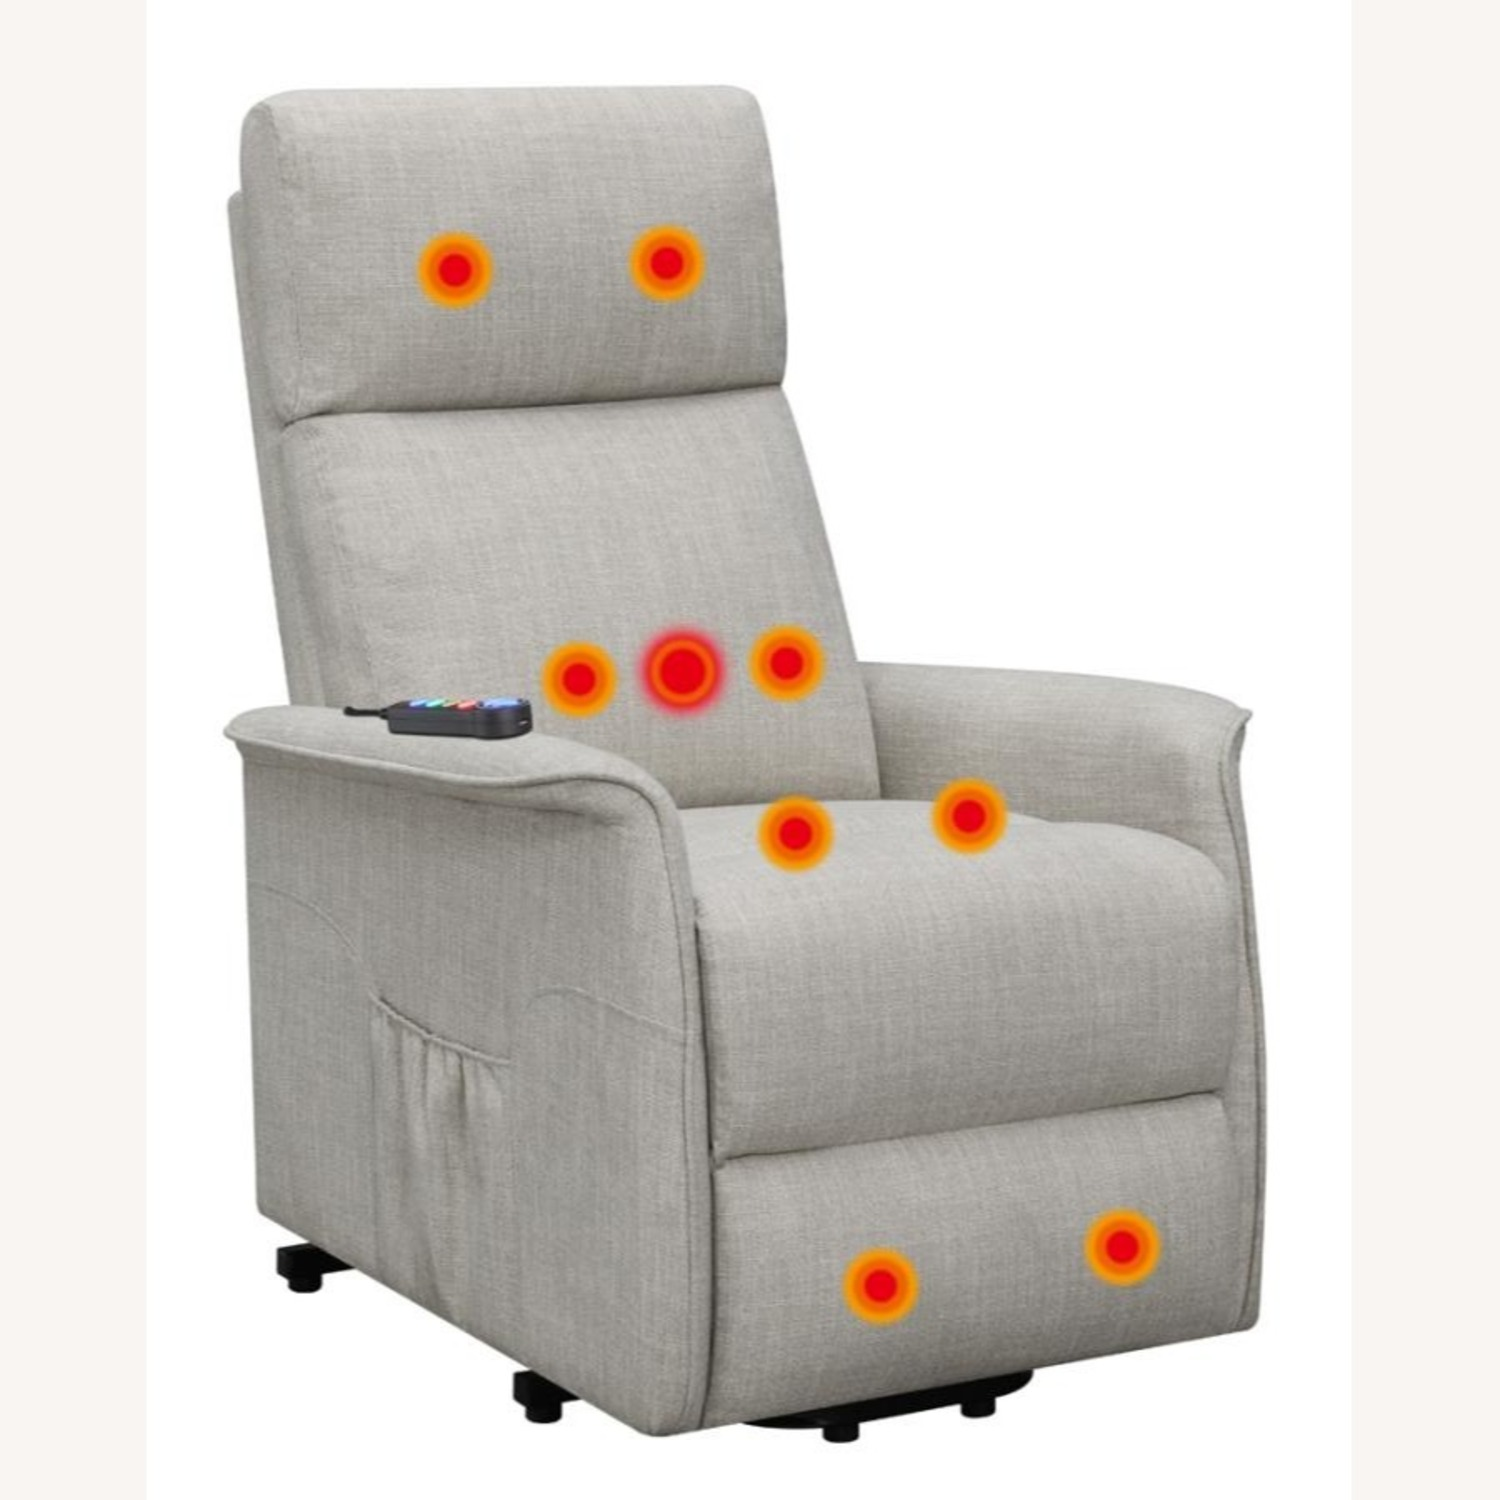 Power Lift Recliner Tufted In Beige Fabric - image-2